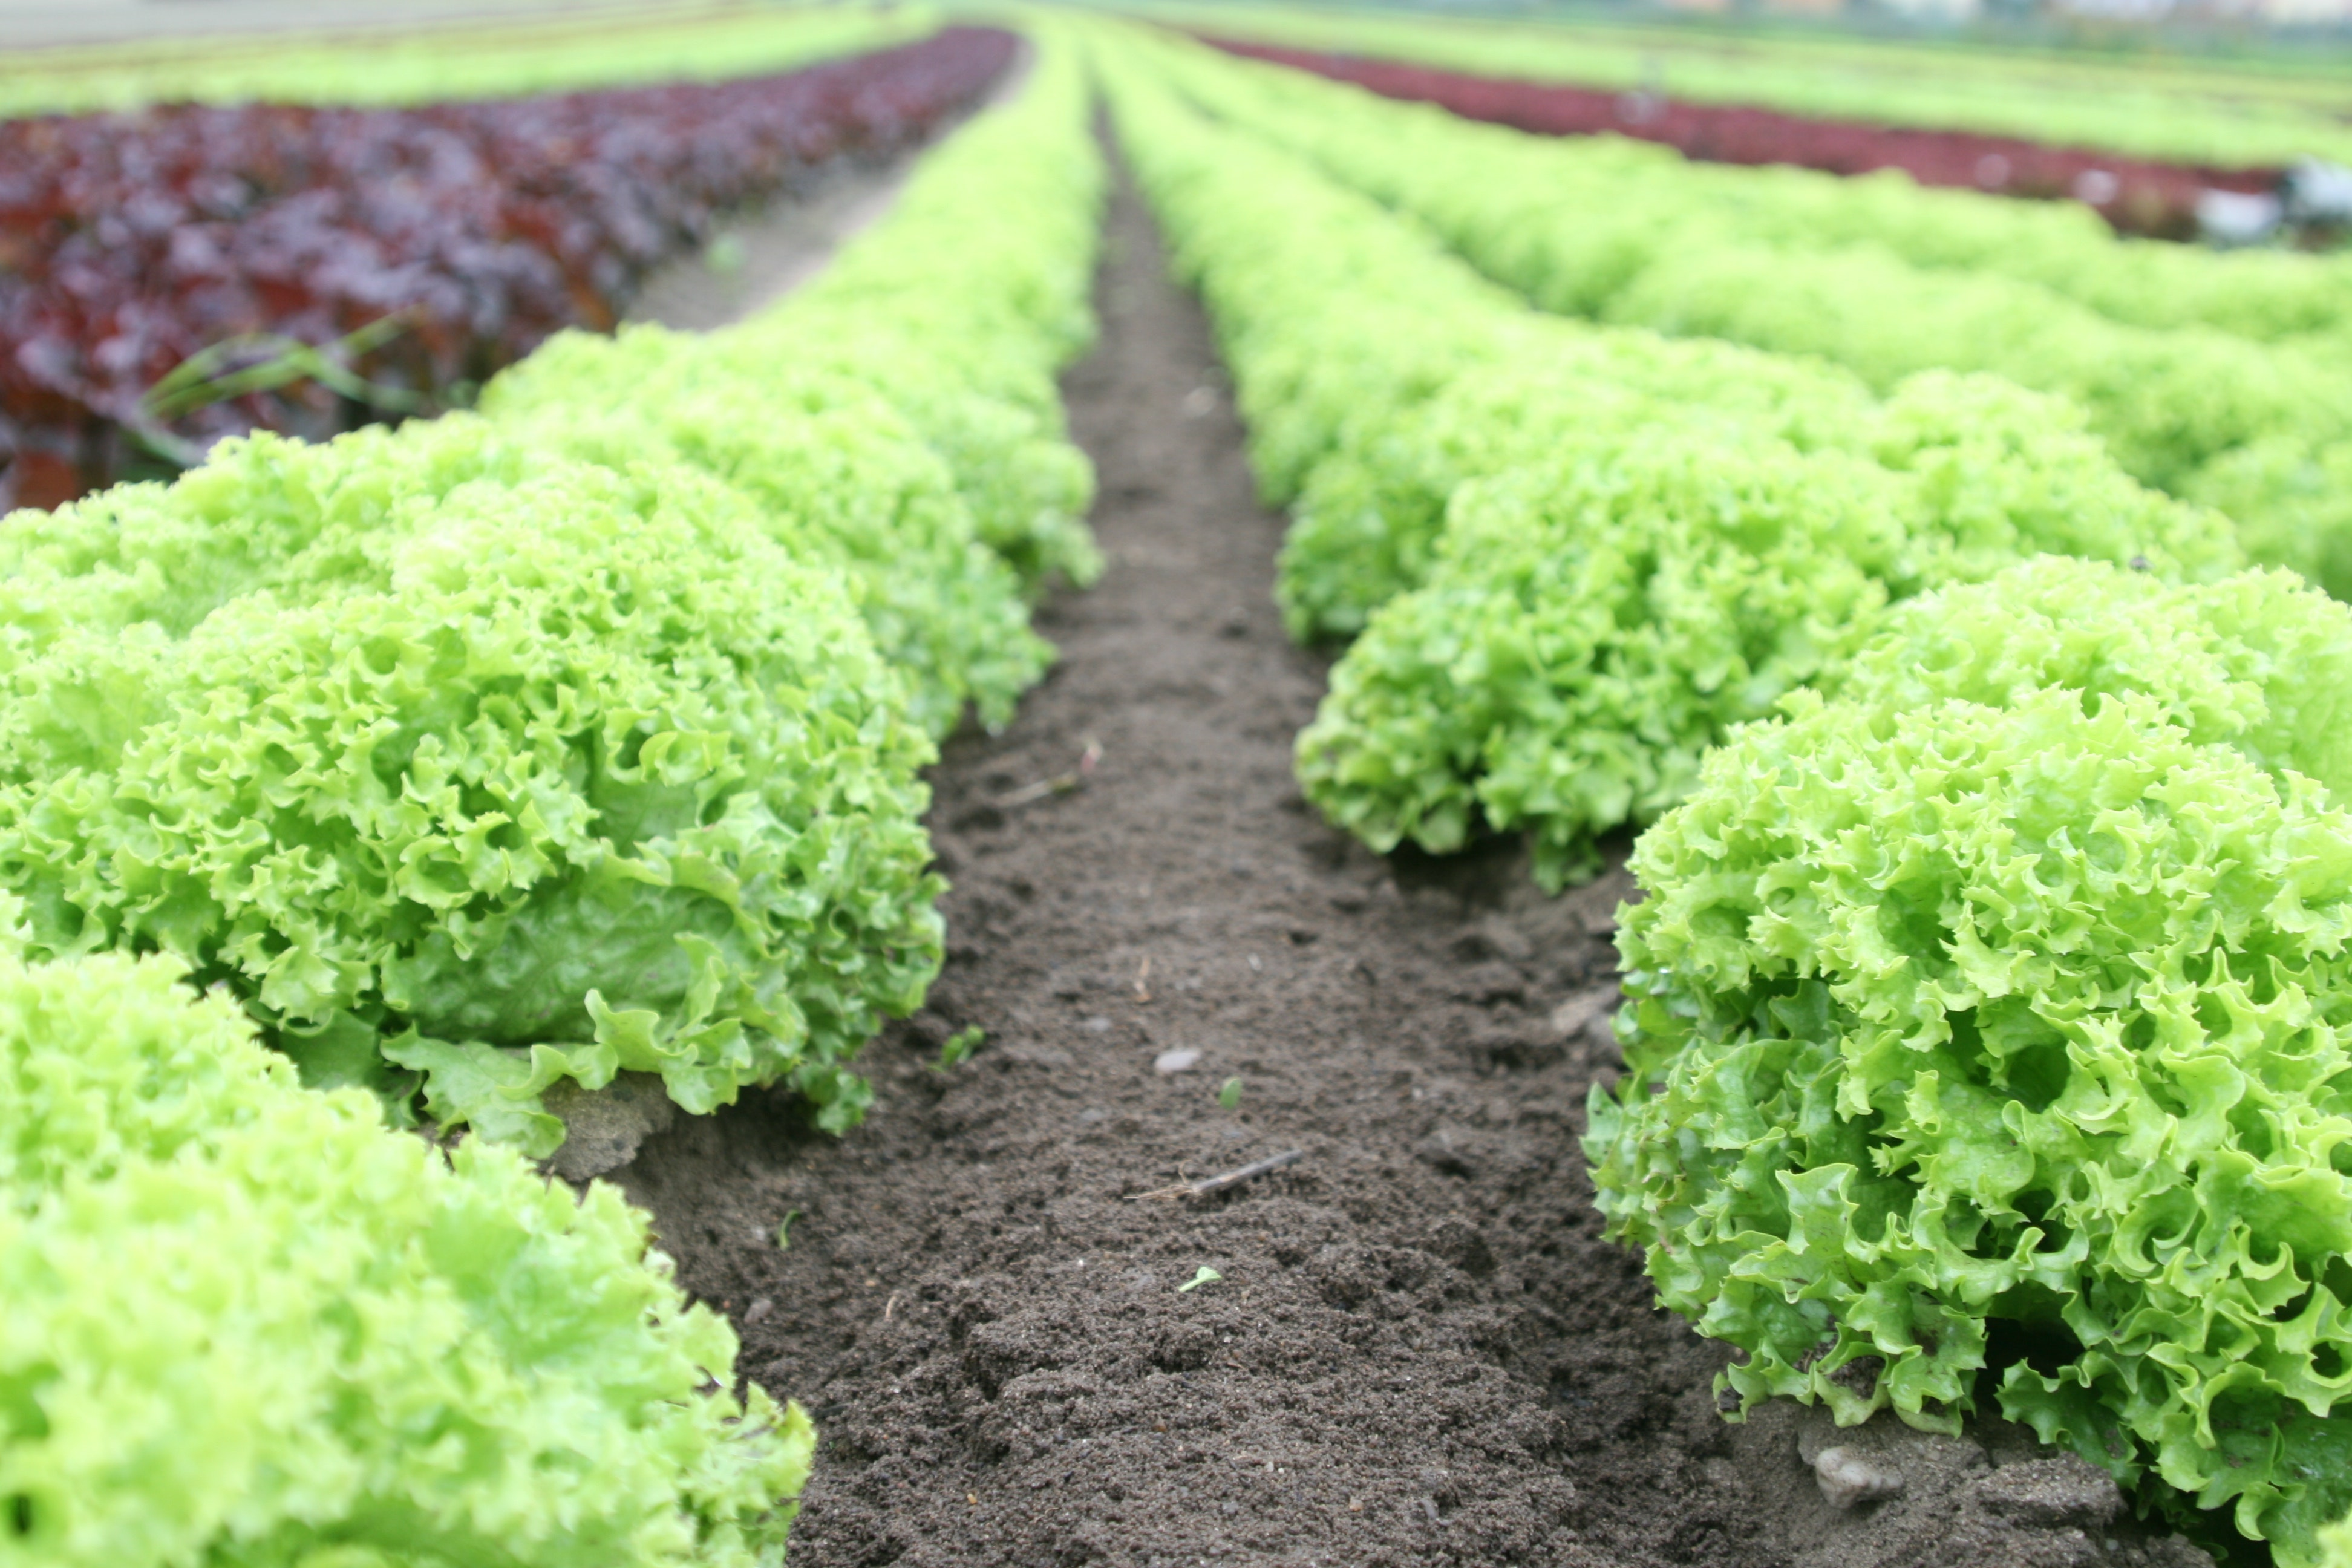 farm-produce-field-food-89267.jpg